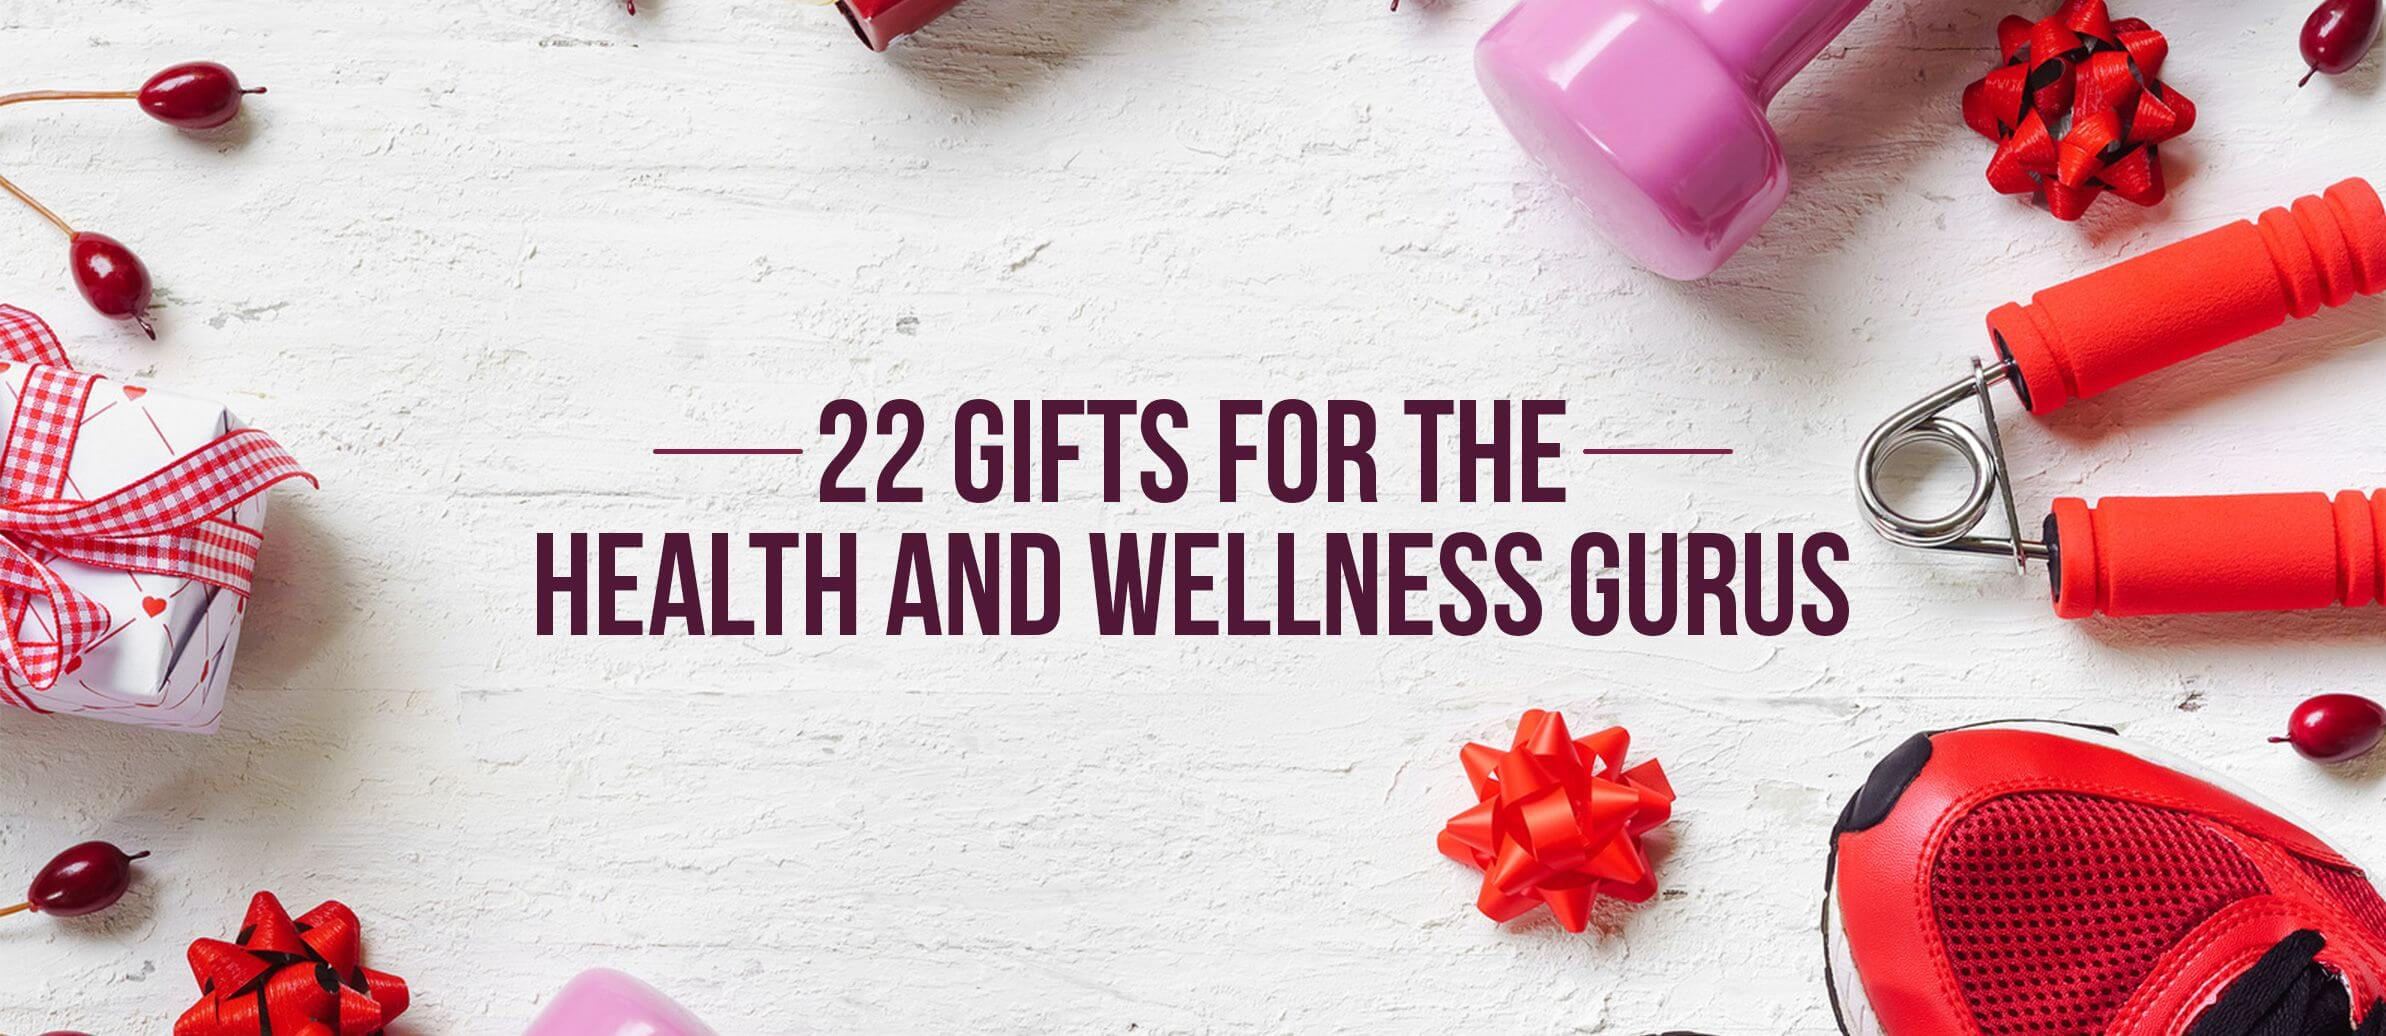 22 Gifts for Health and Wellness Gurus